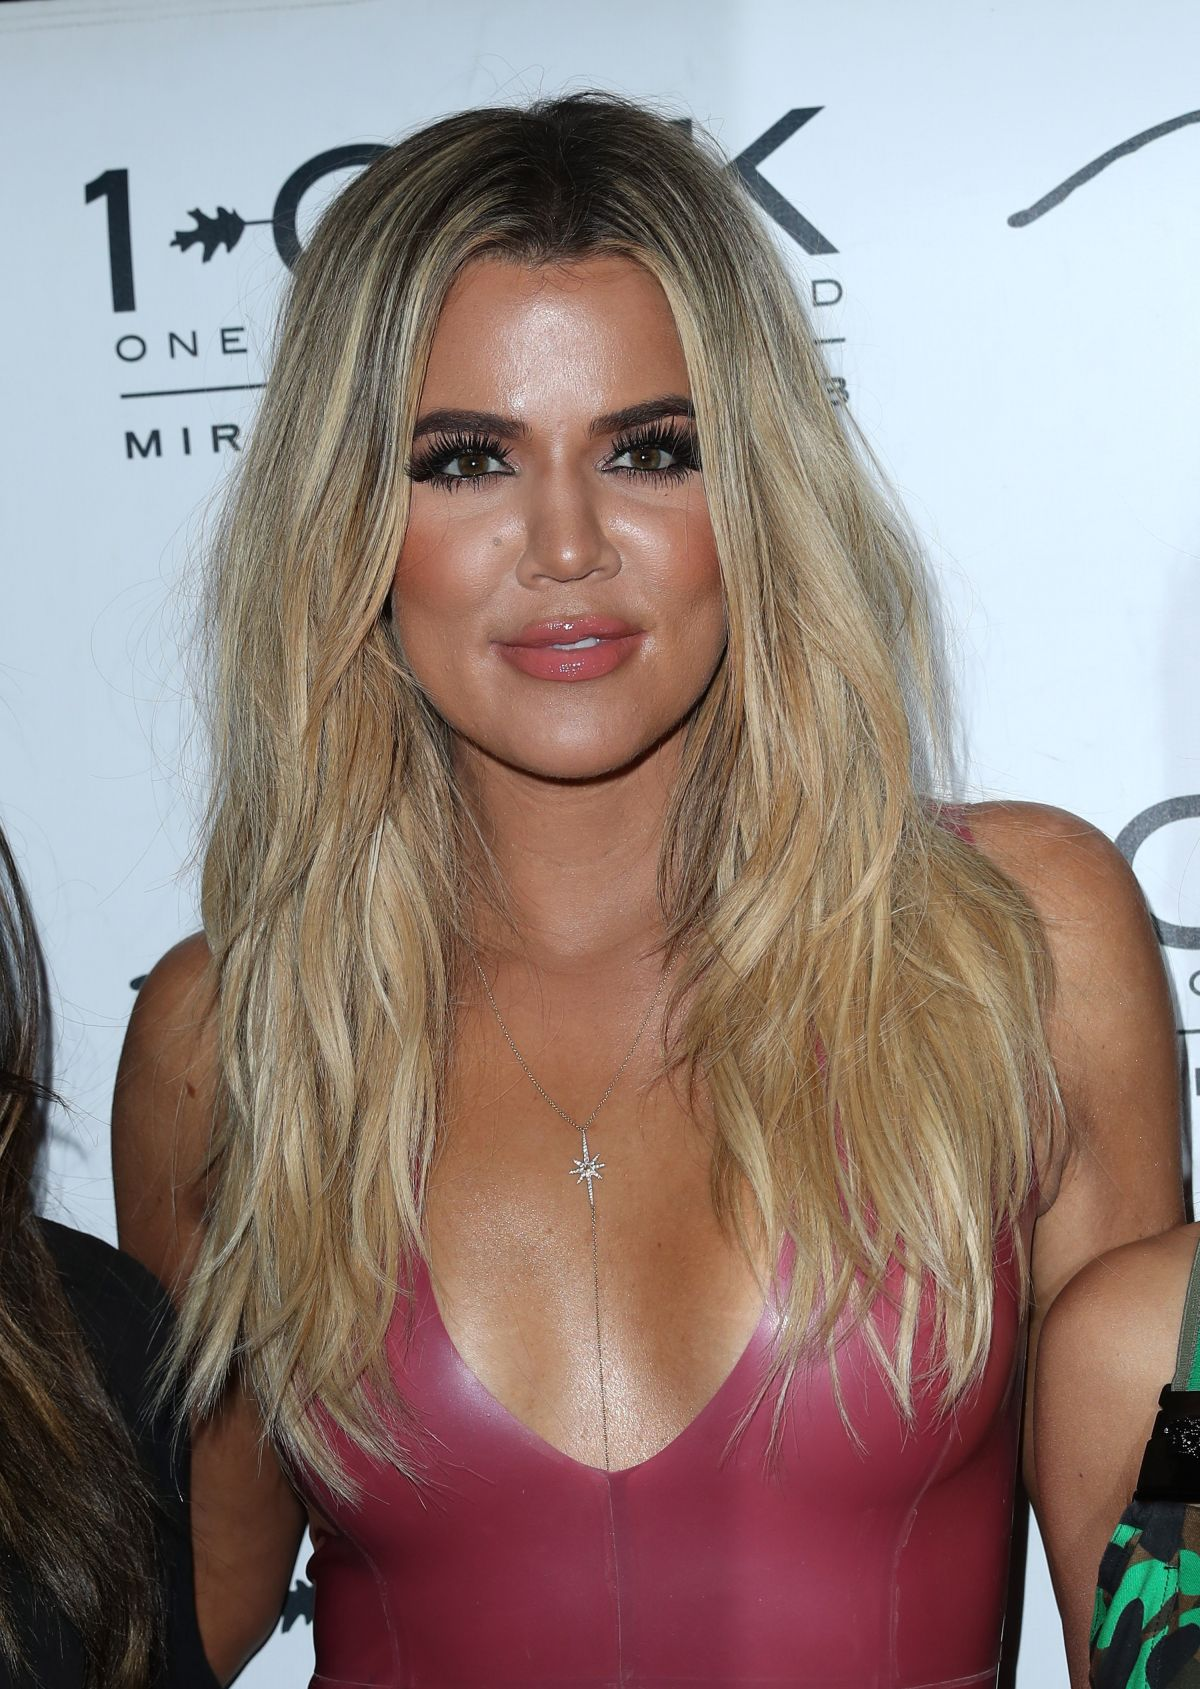 khloe kardashian - photo #31